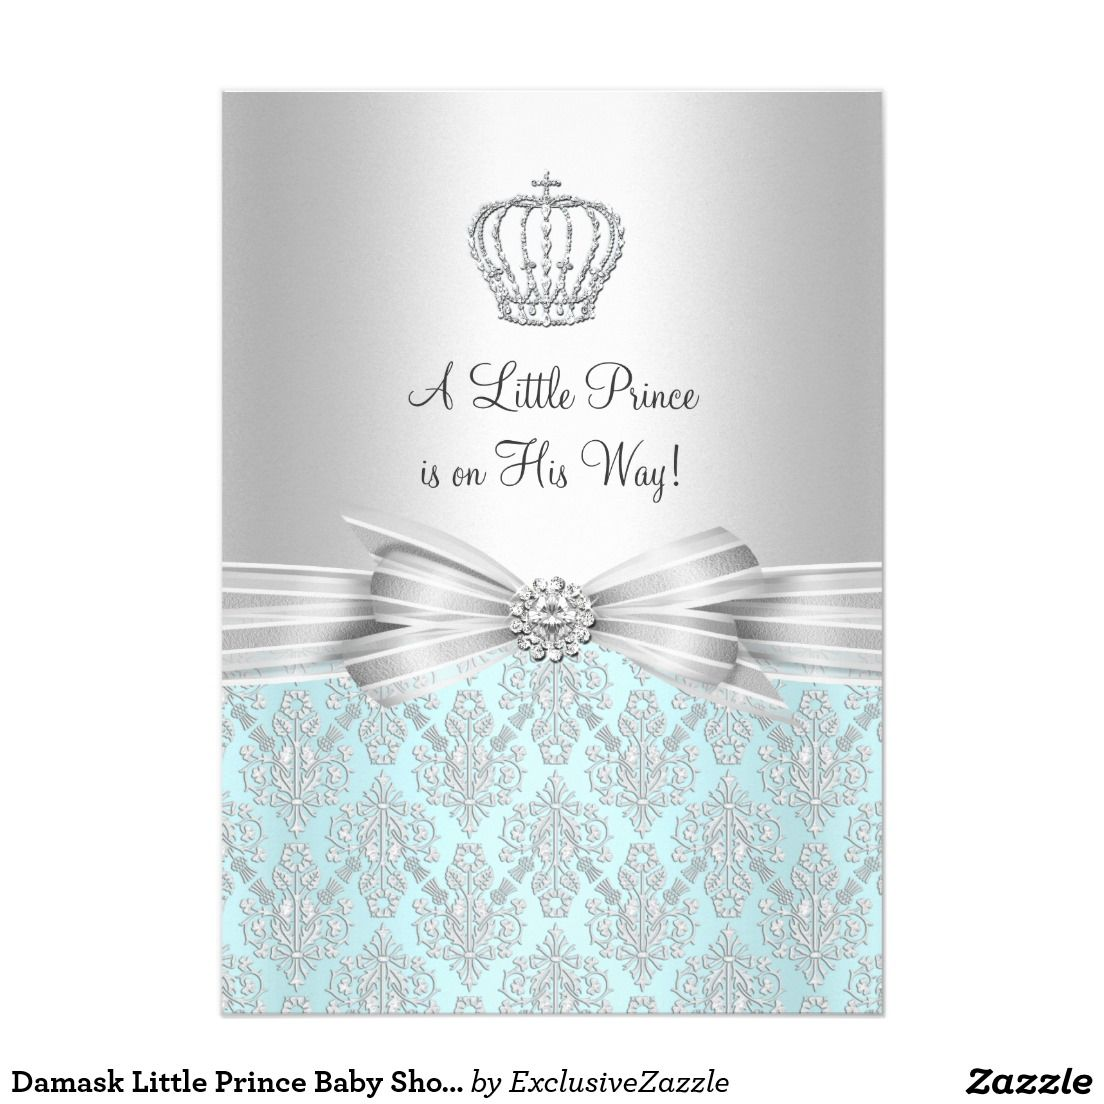 Damask Little Prince Baby Shower Invitation | Shower invitations